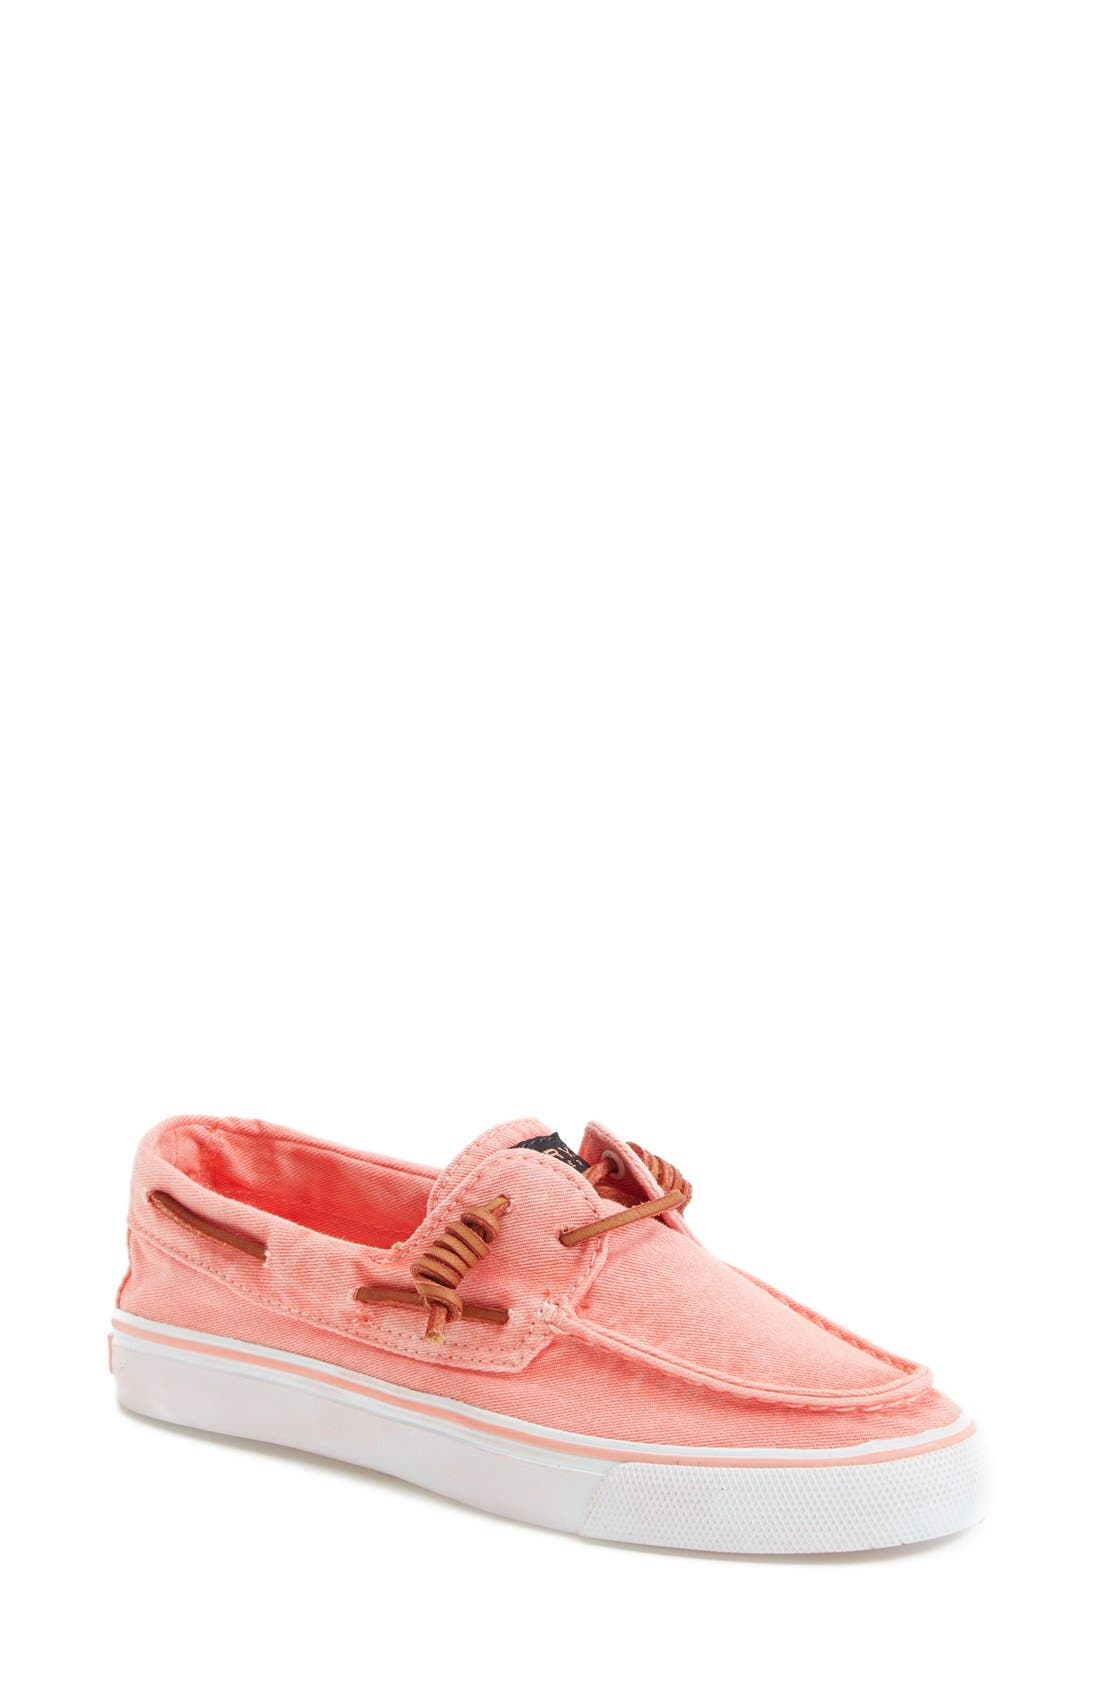 Top-Sider<sup>®</sup> 'Bahama' Sequined Boat Shoe,                             Main thumbnail 38, color,